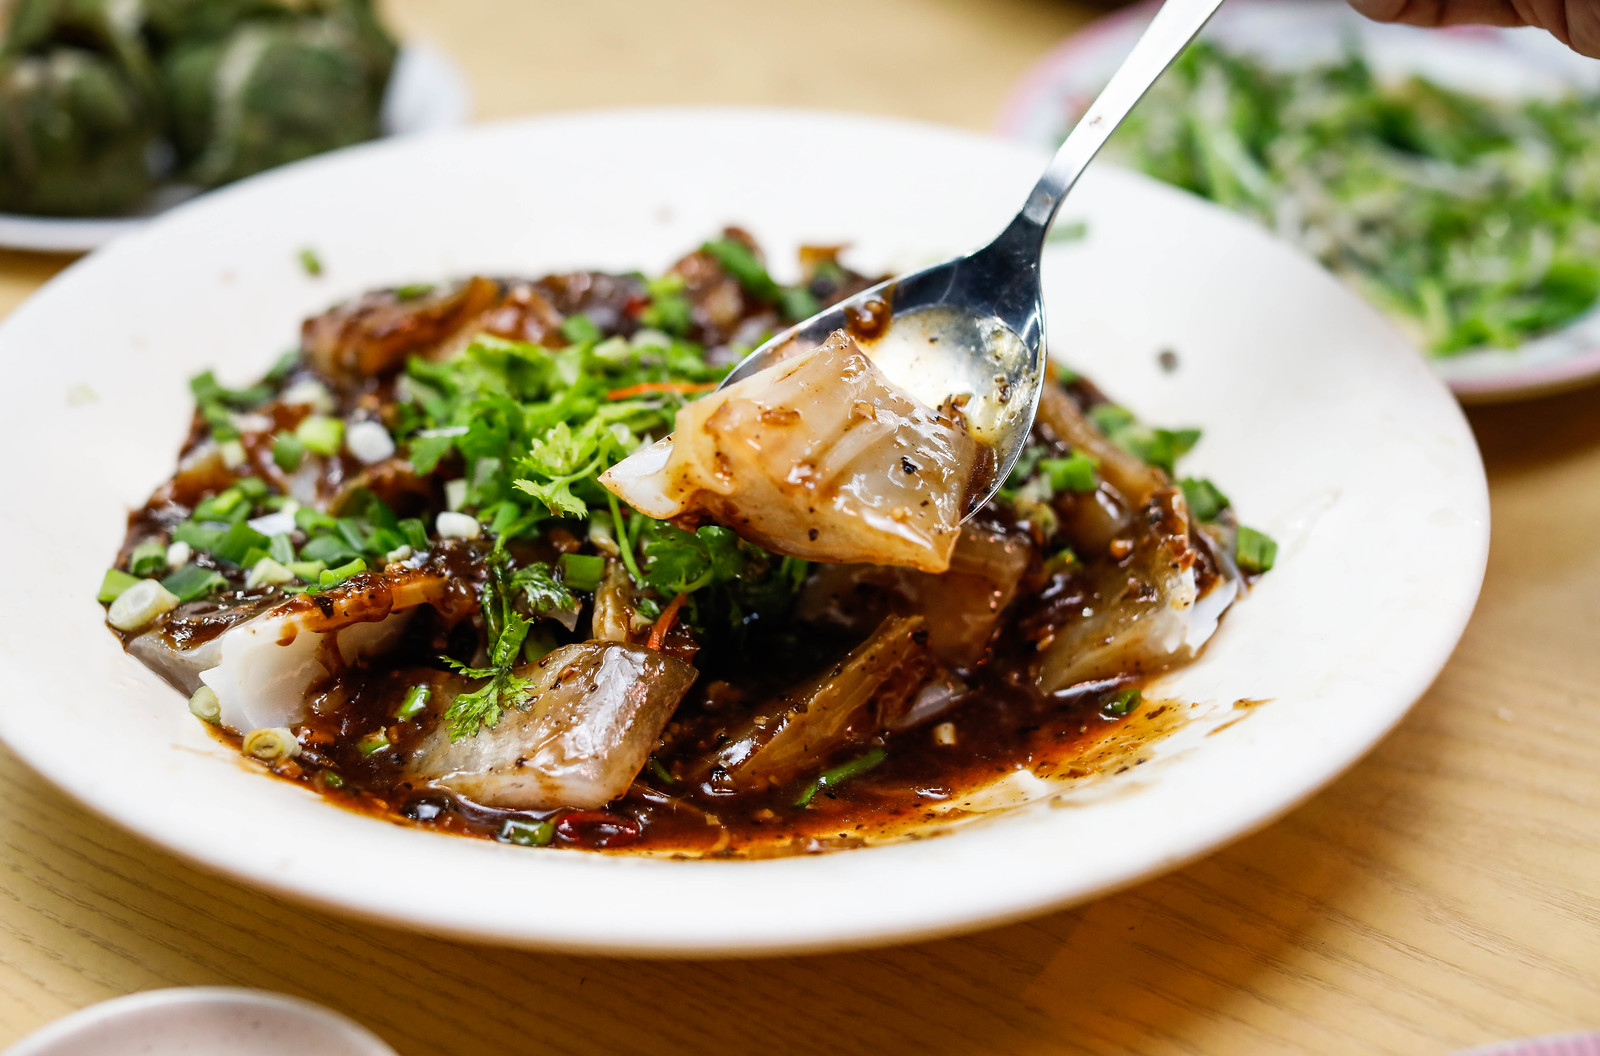 Plate of Shark's Head in Black Bean Sauce